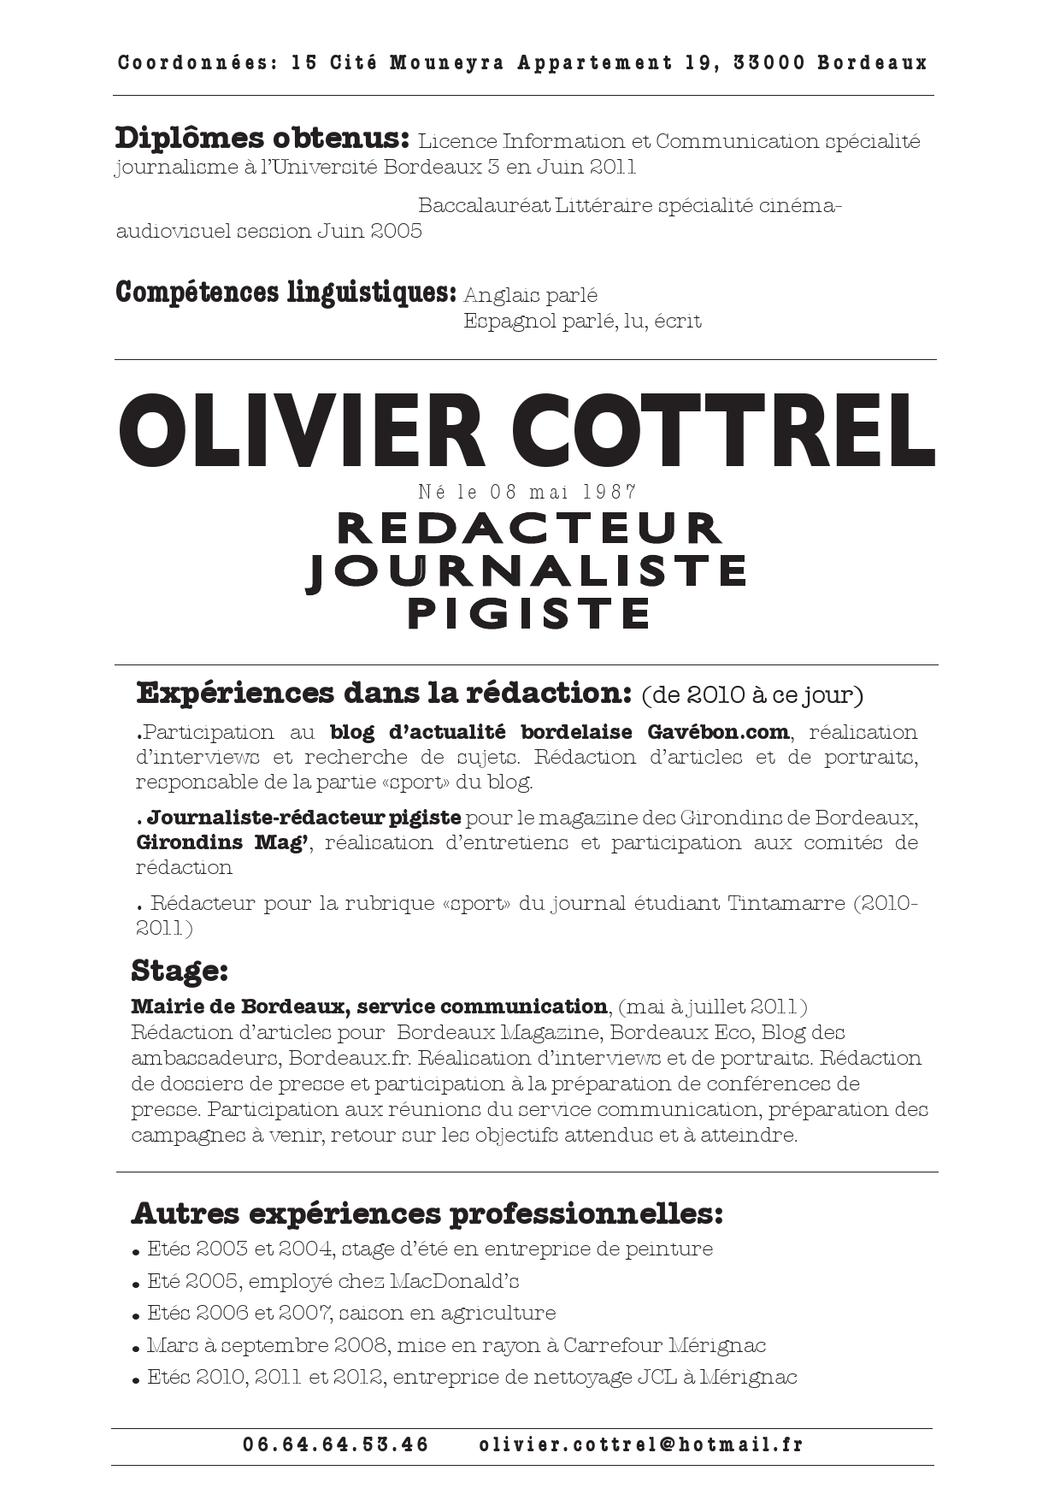 cv olivier cottrel by club de la presse de bordeaux